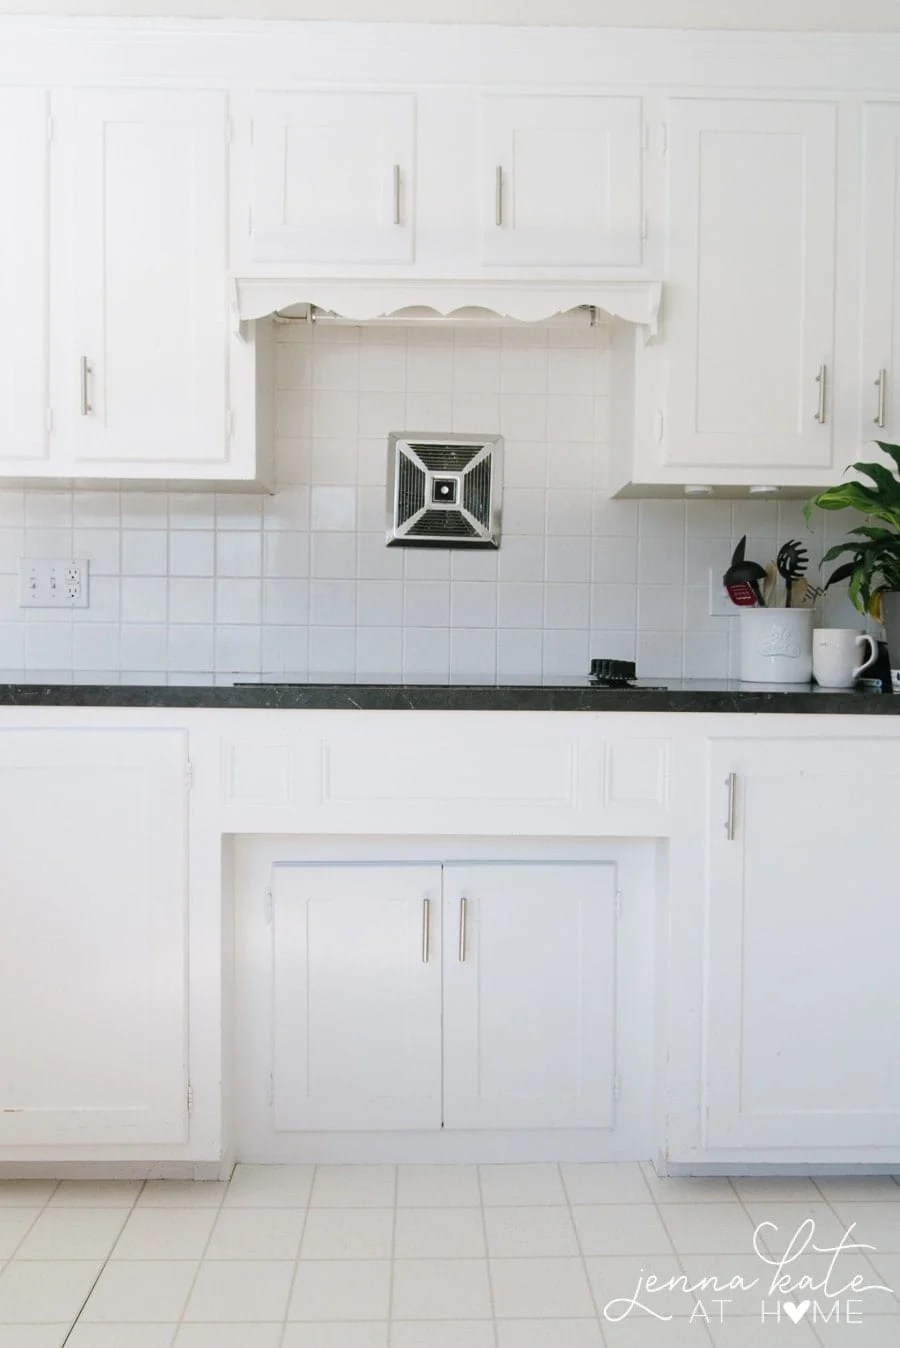 outdated kitchen with scalloped trim over the stove